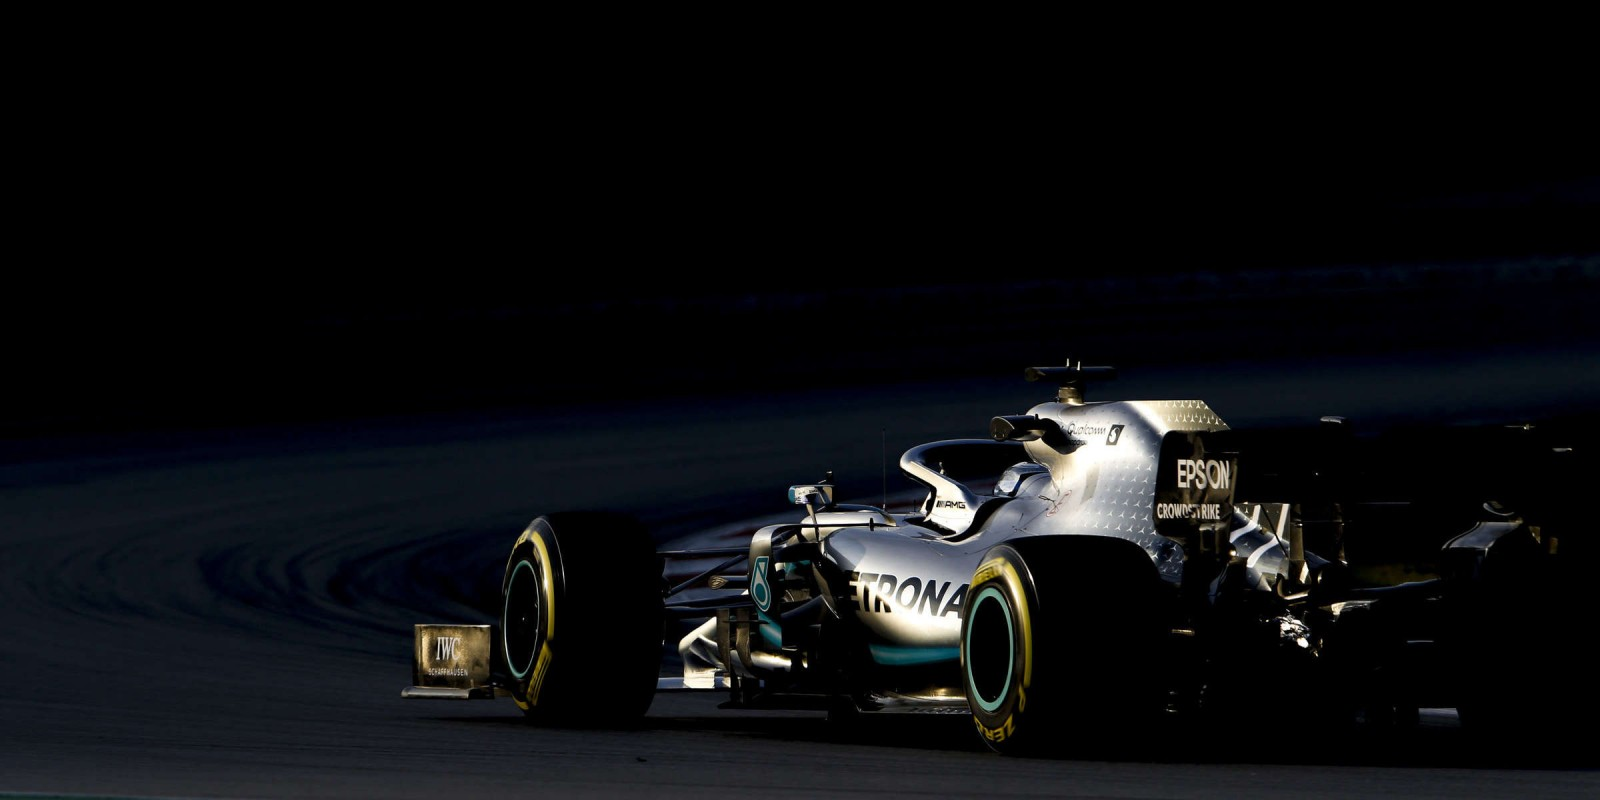 F1 2019 The Race Is On Images, Photos, Reviews